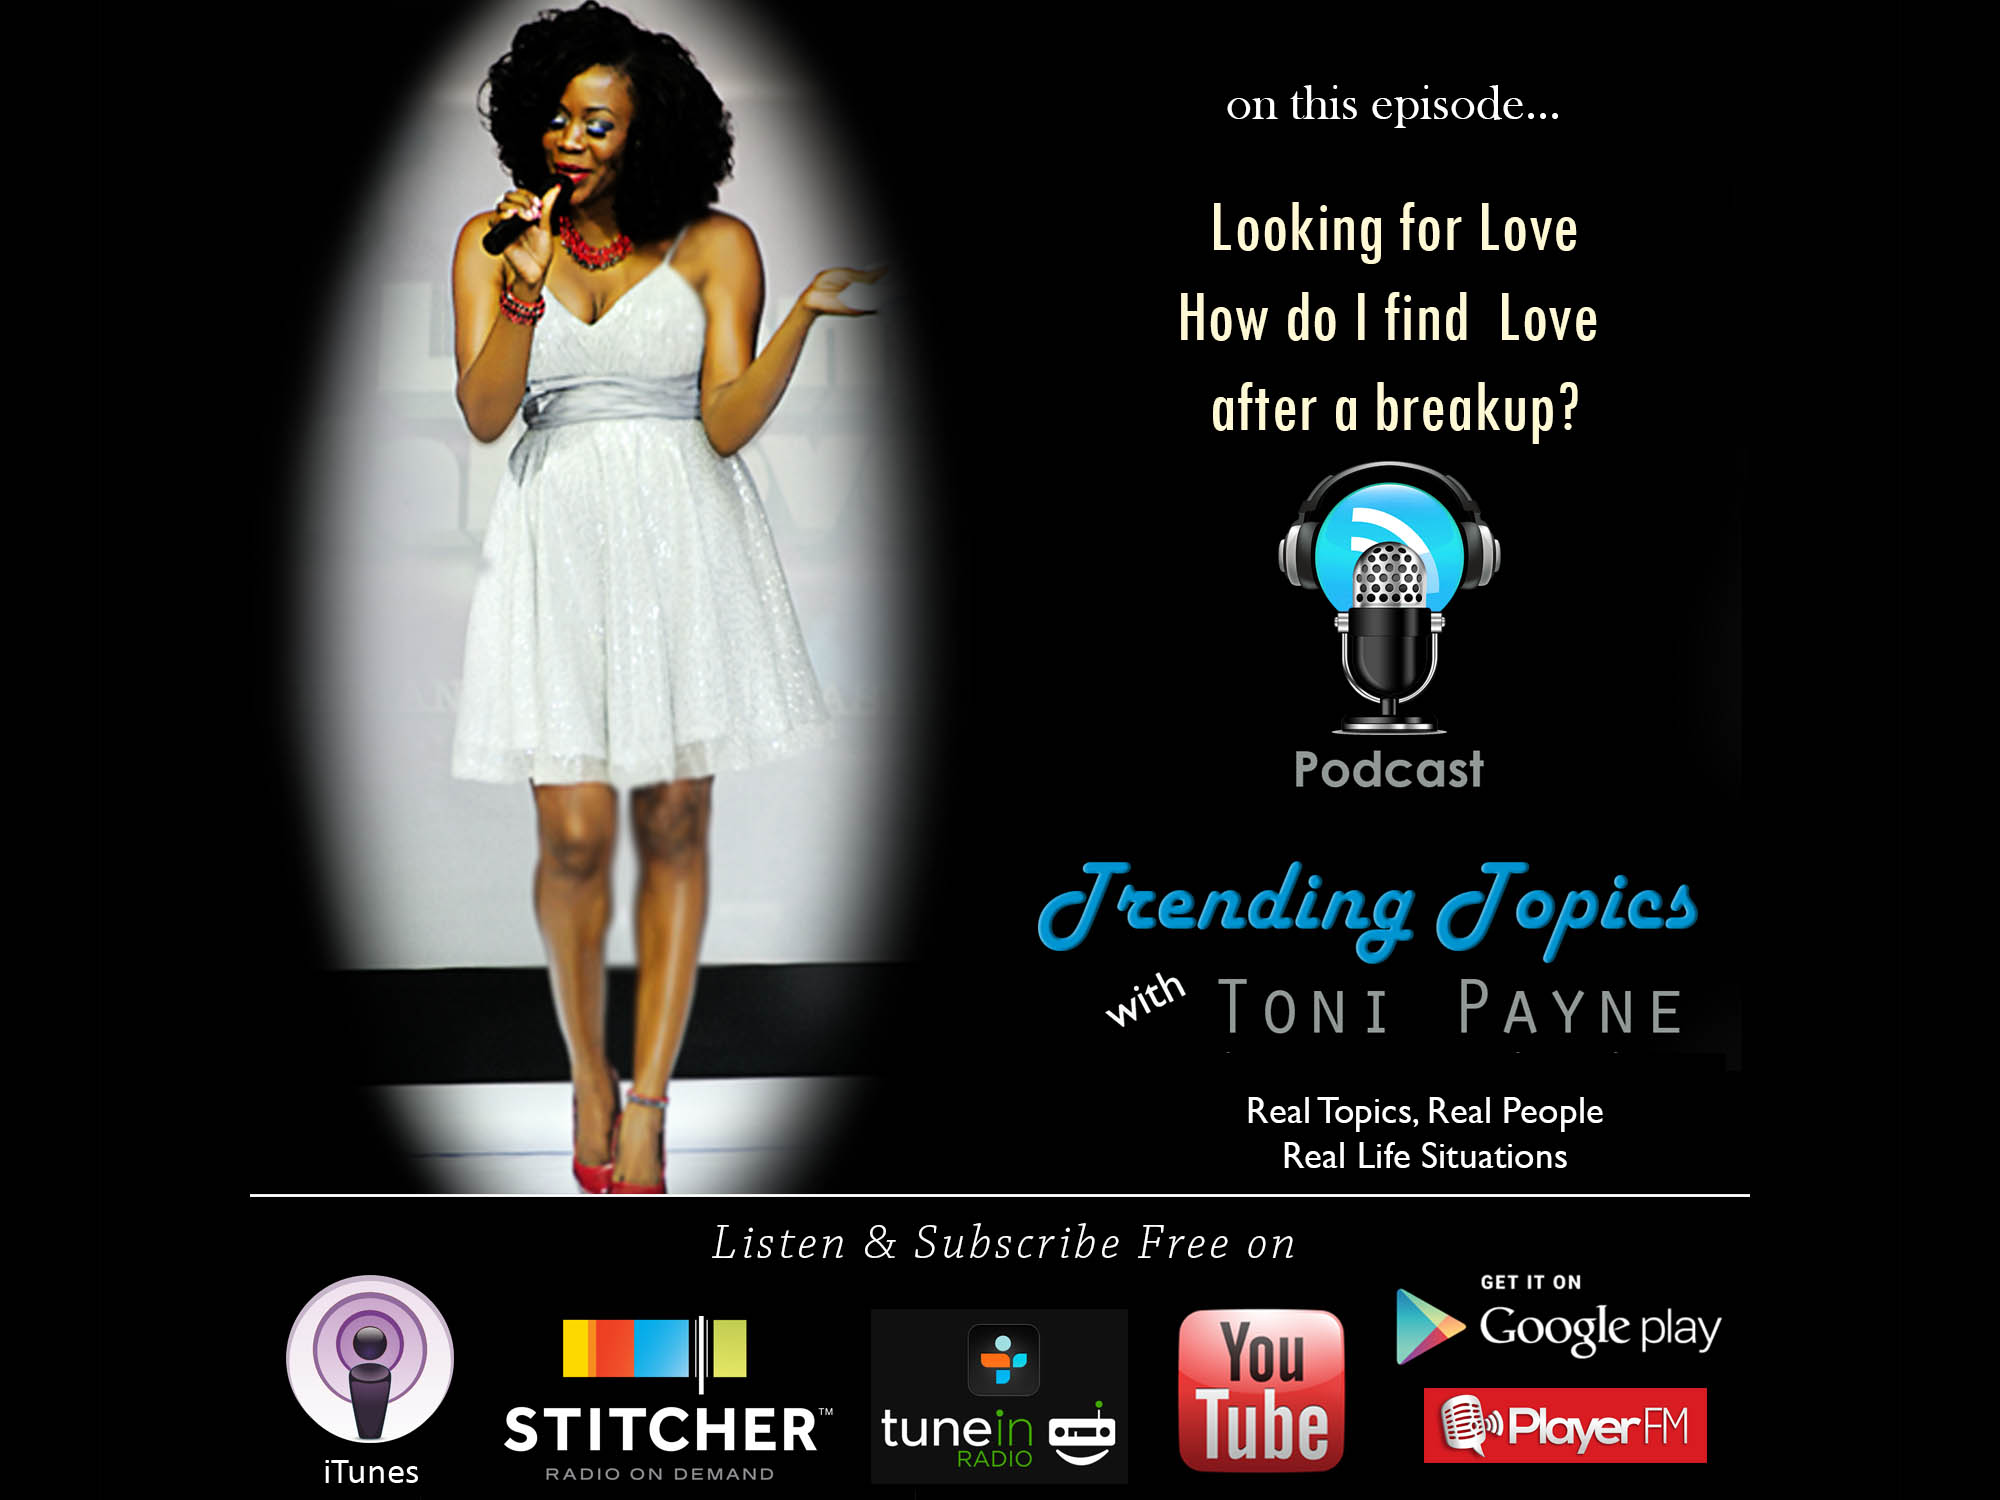 episode 22_How do I find Love again